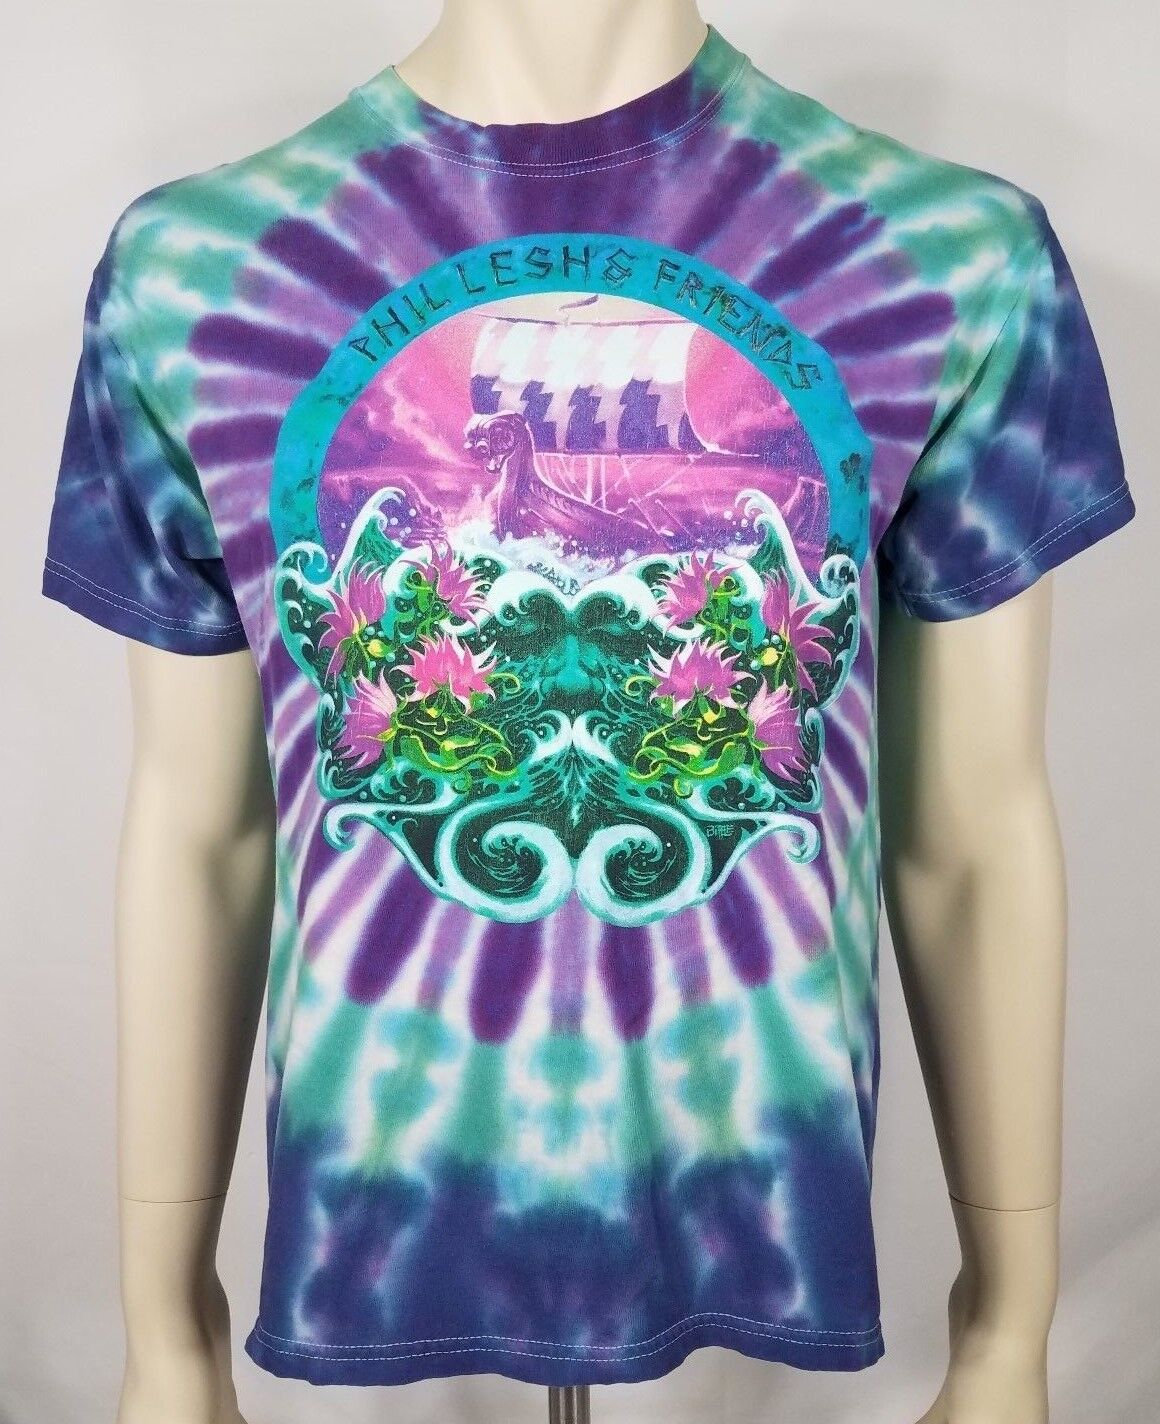 Phil Lesh and Friends Odyssey Summer Tour 2001 Blau tie dye t-shirt adults Large